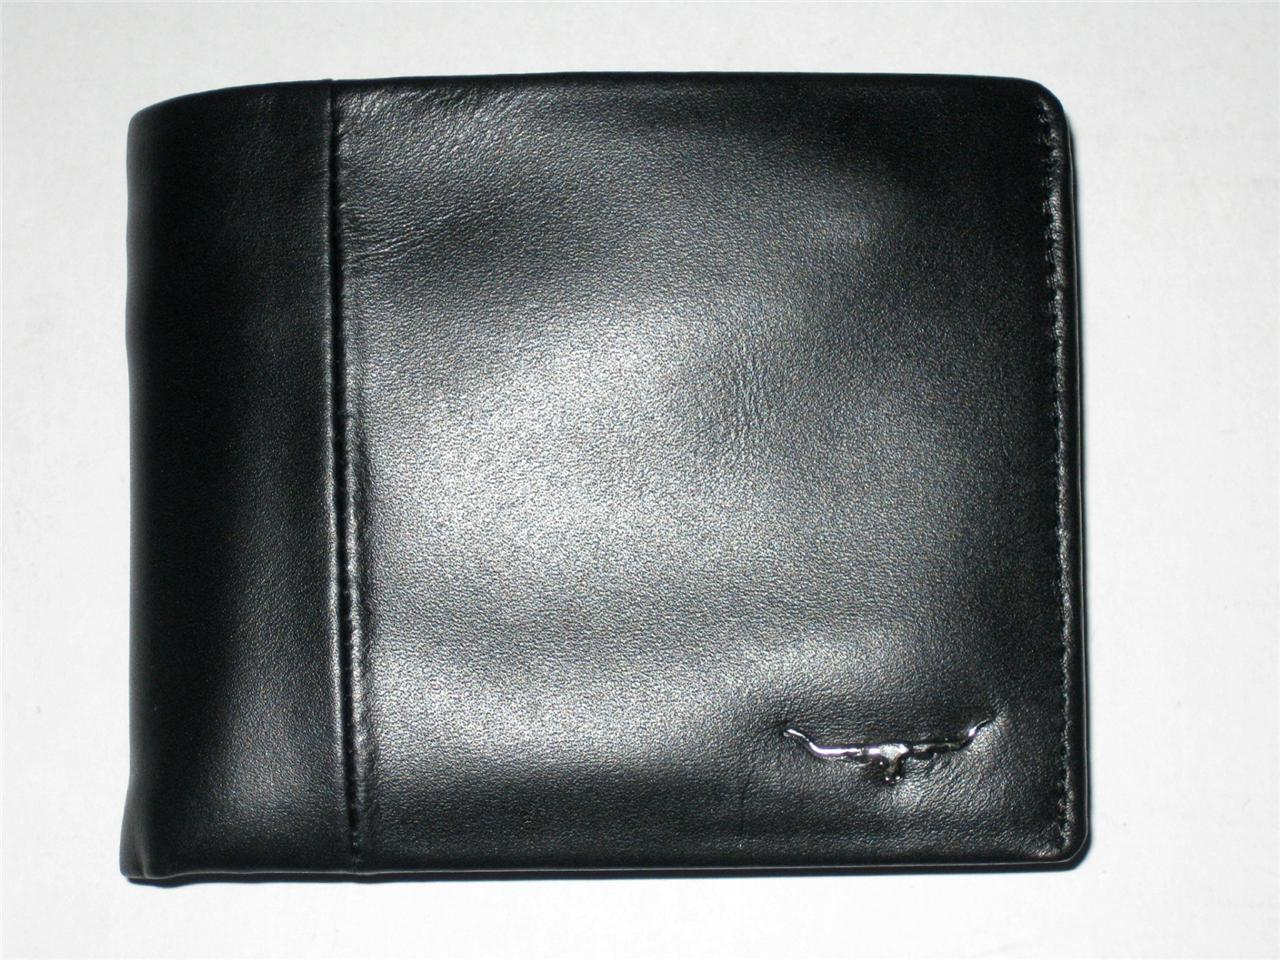 New Rm Williams Mens Black Leather Bifold Wallet With Interior Flap Clip Coin254 Ebay